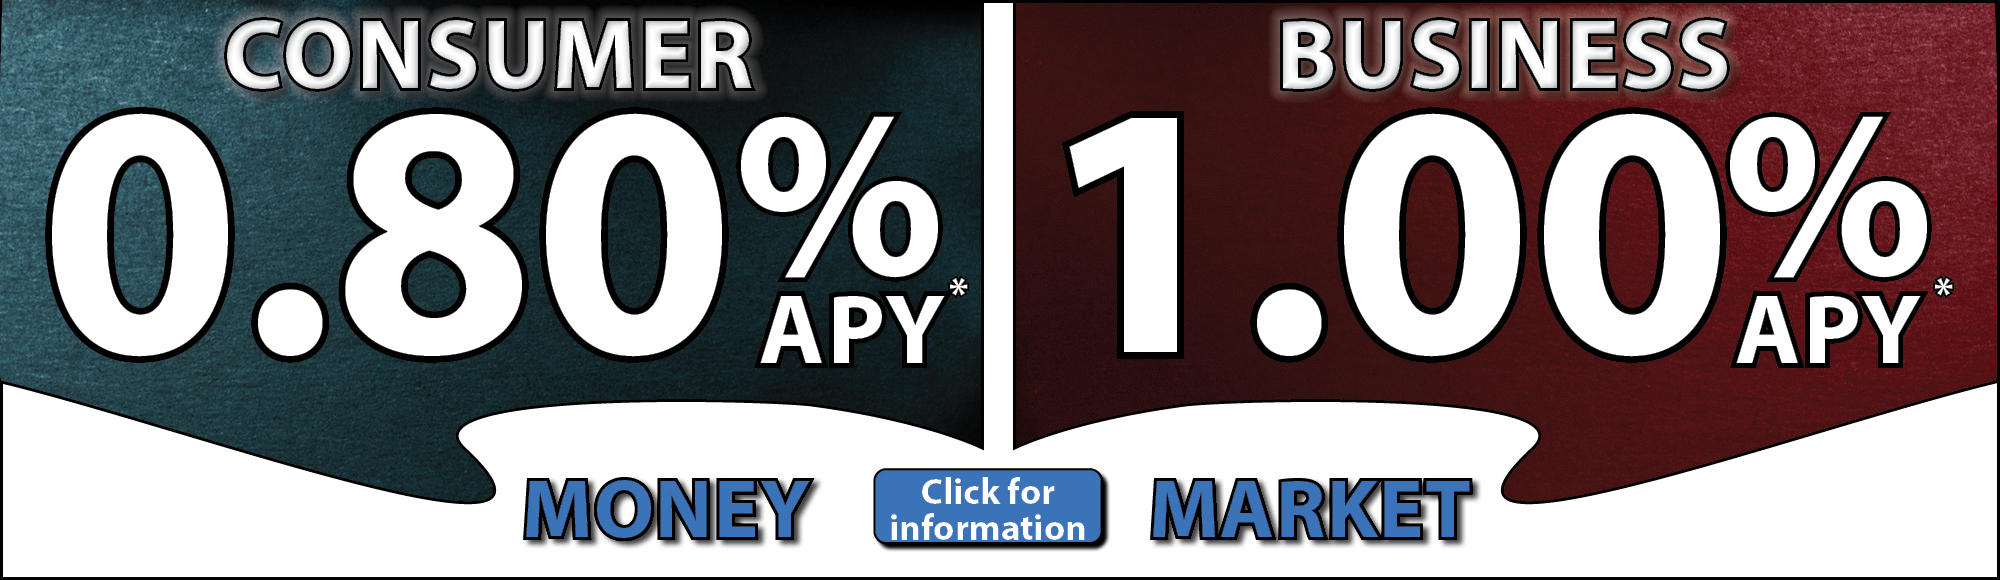 Consumer Money Market - 0.80% APY*; Business Money Market - 1.00% APY* Click for Information